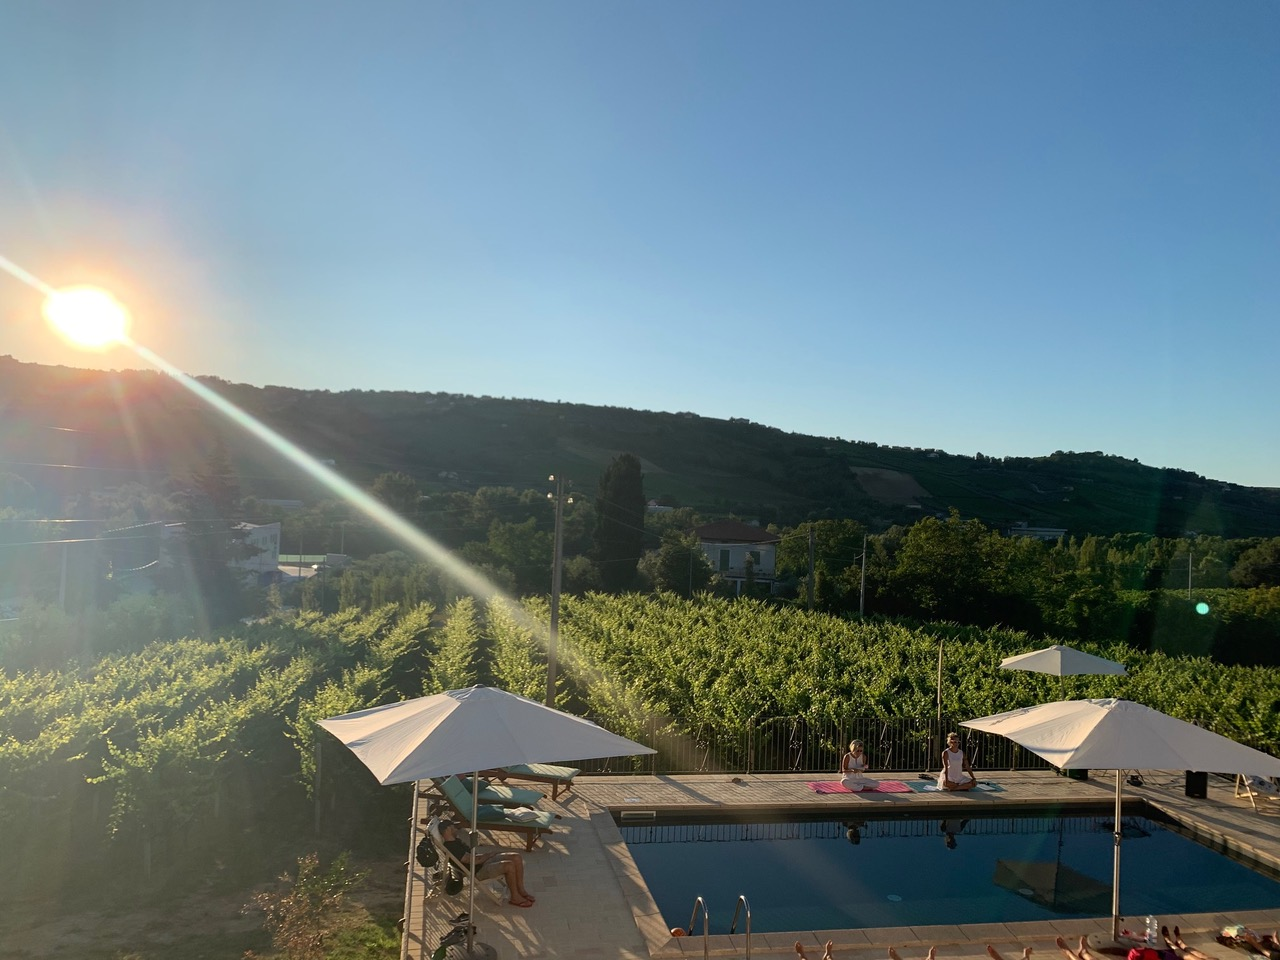 Overnight stay in the winery